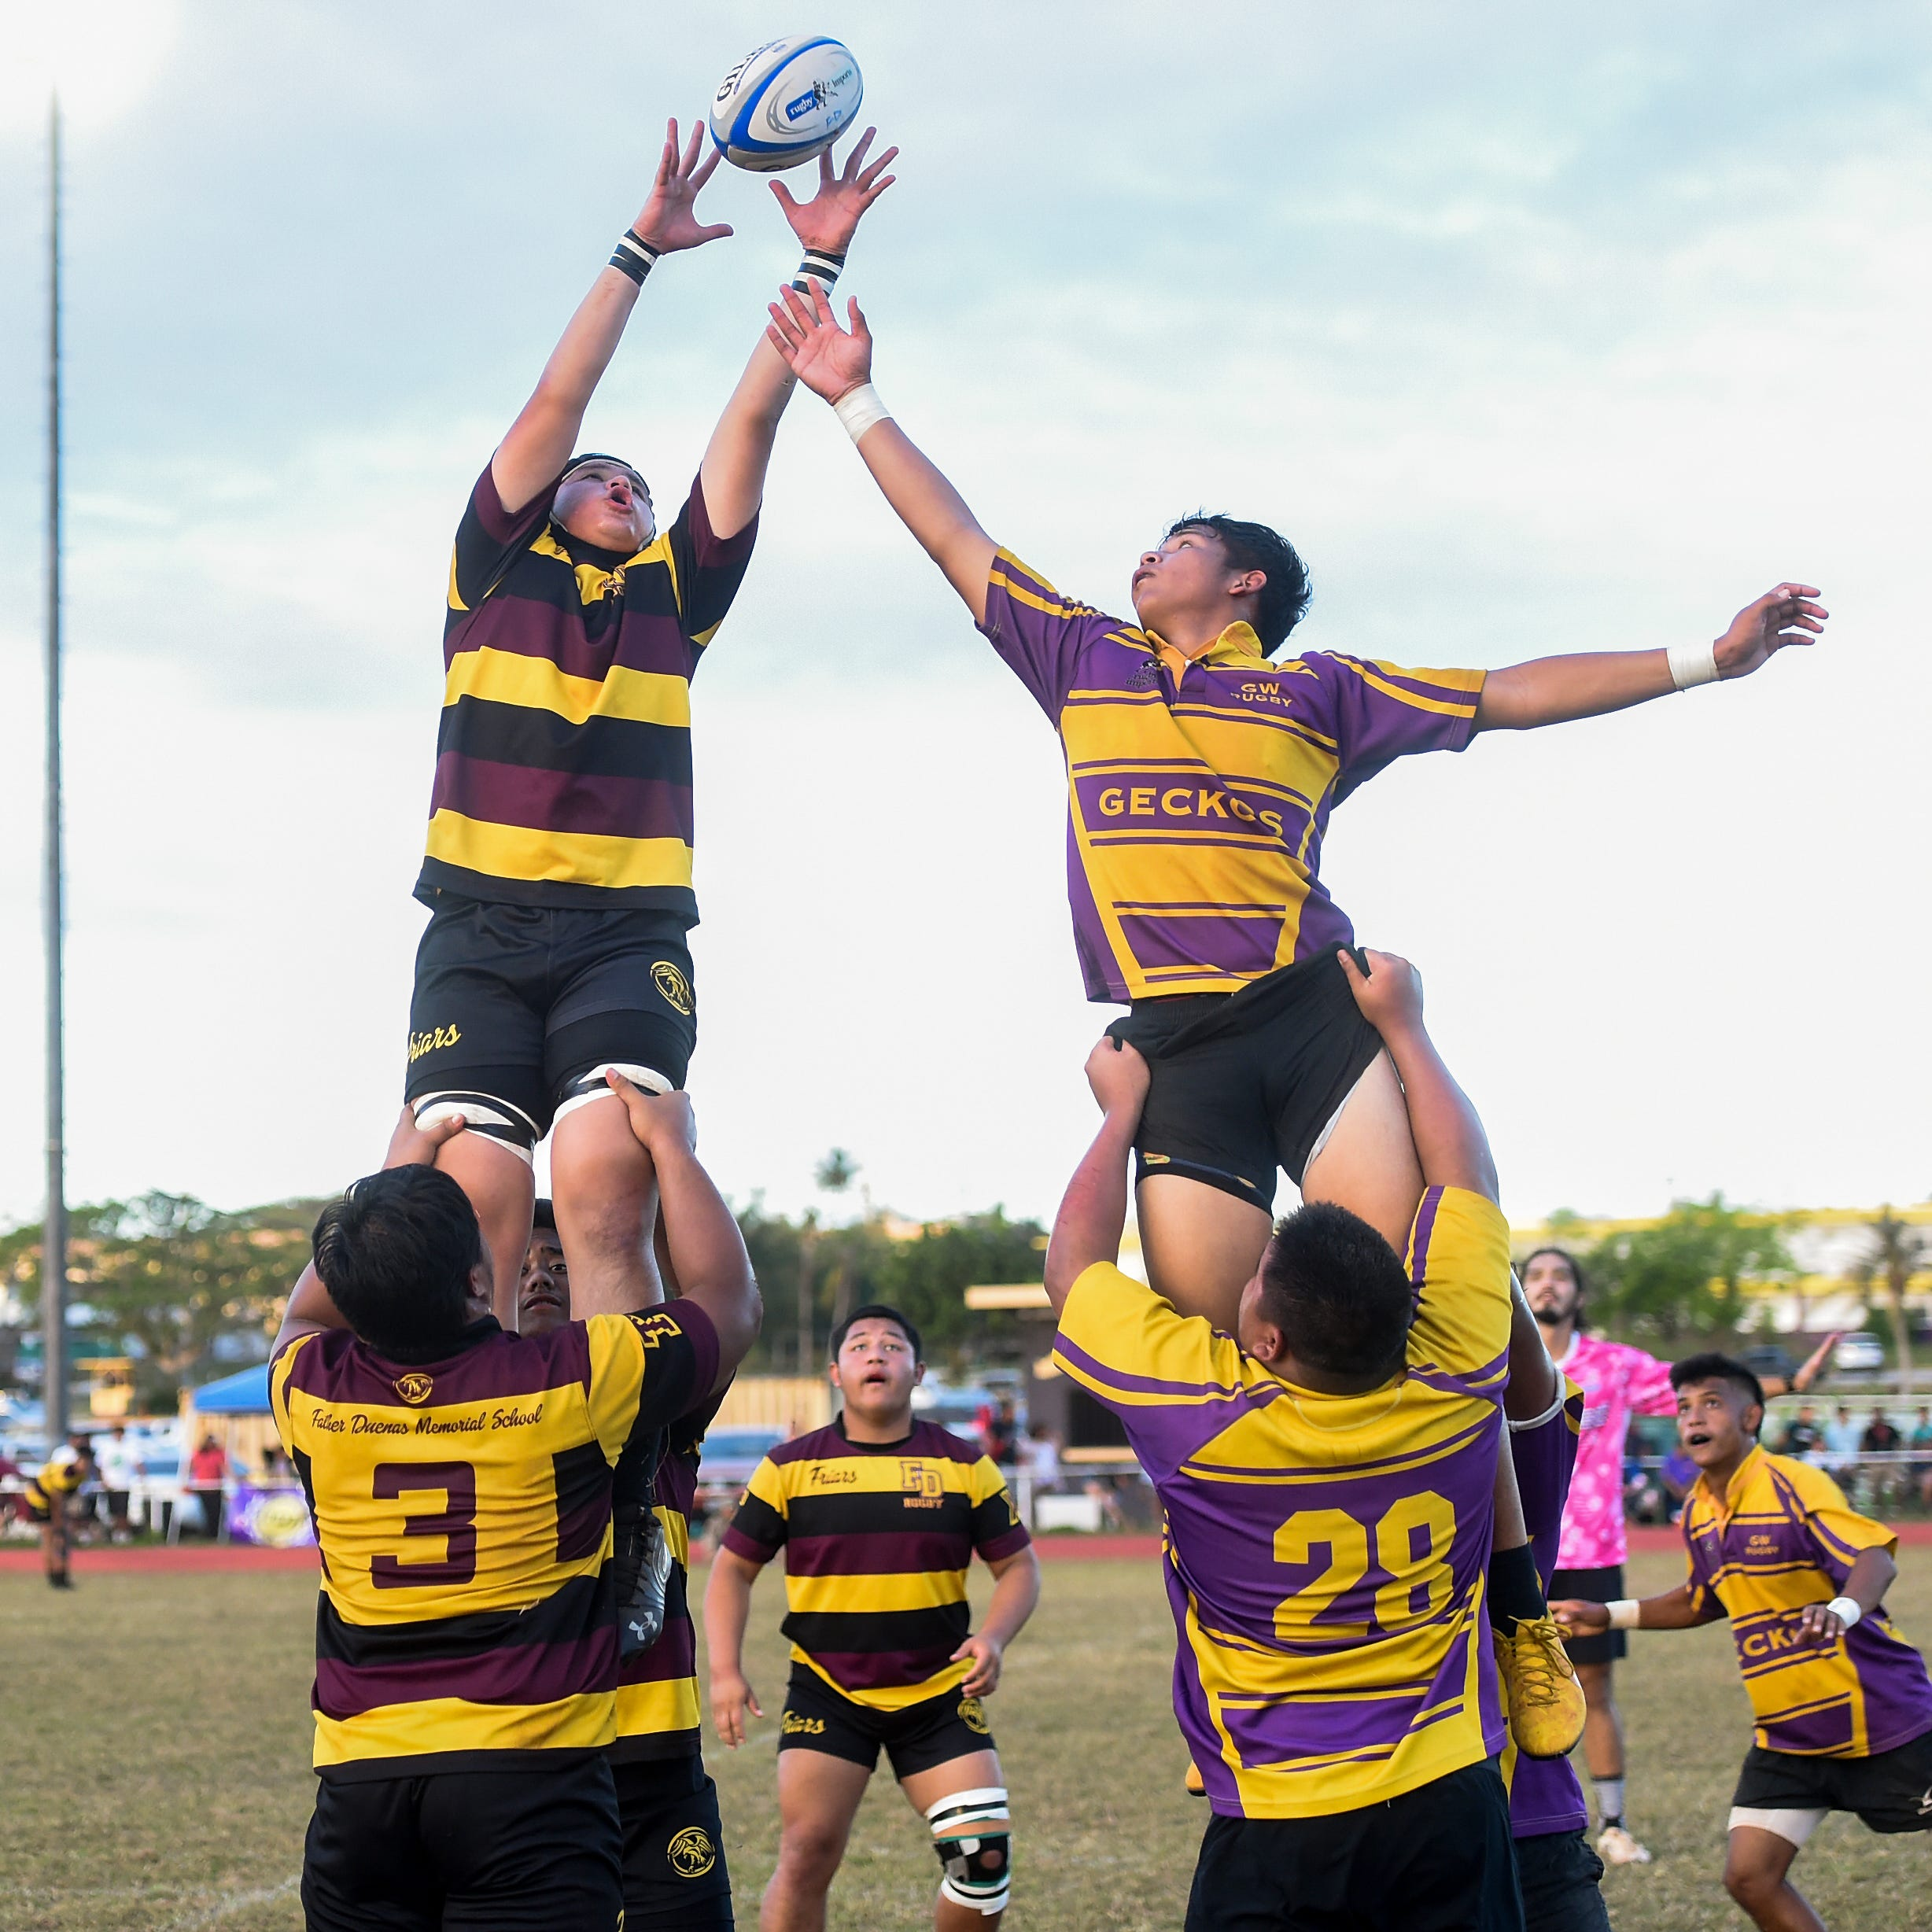 Noah Diaz named top boys rugger